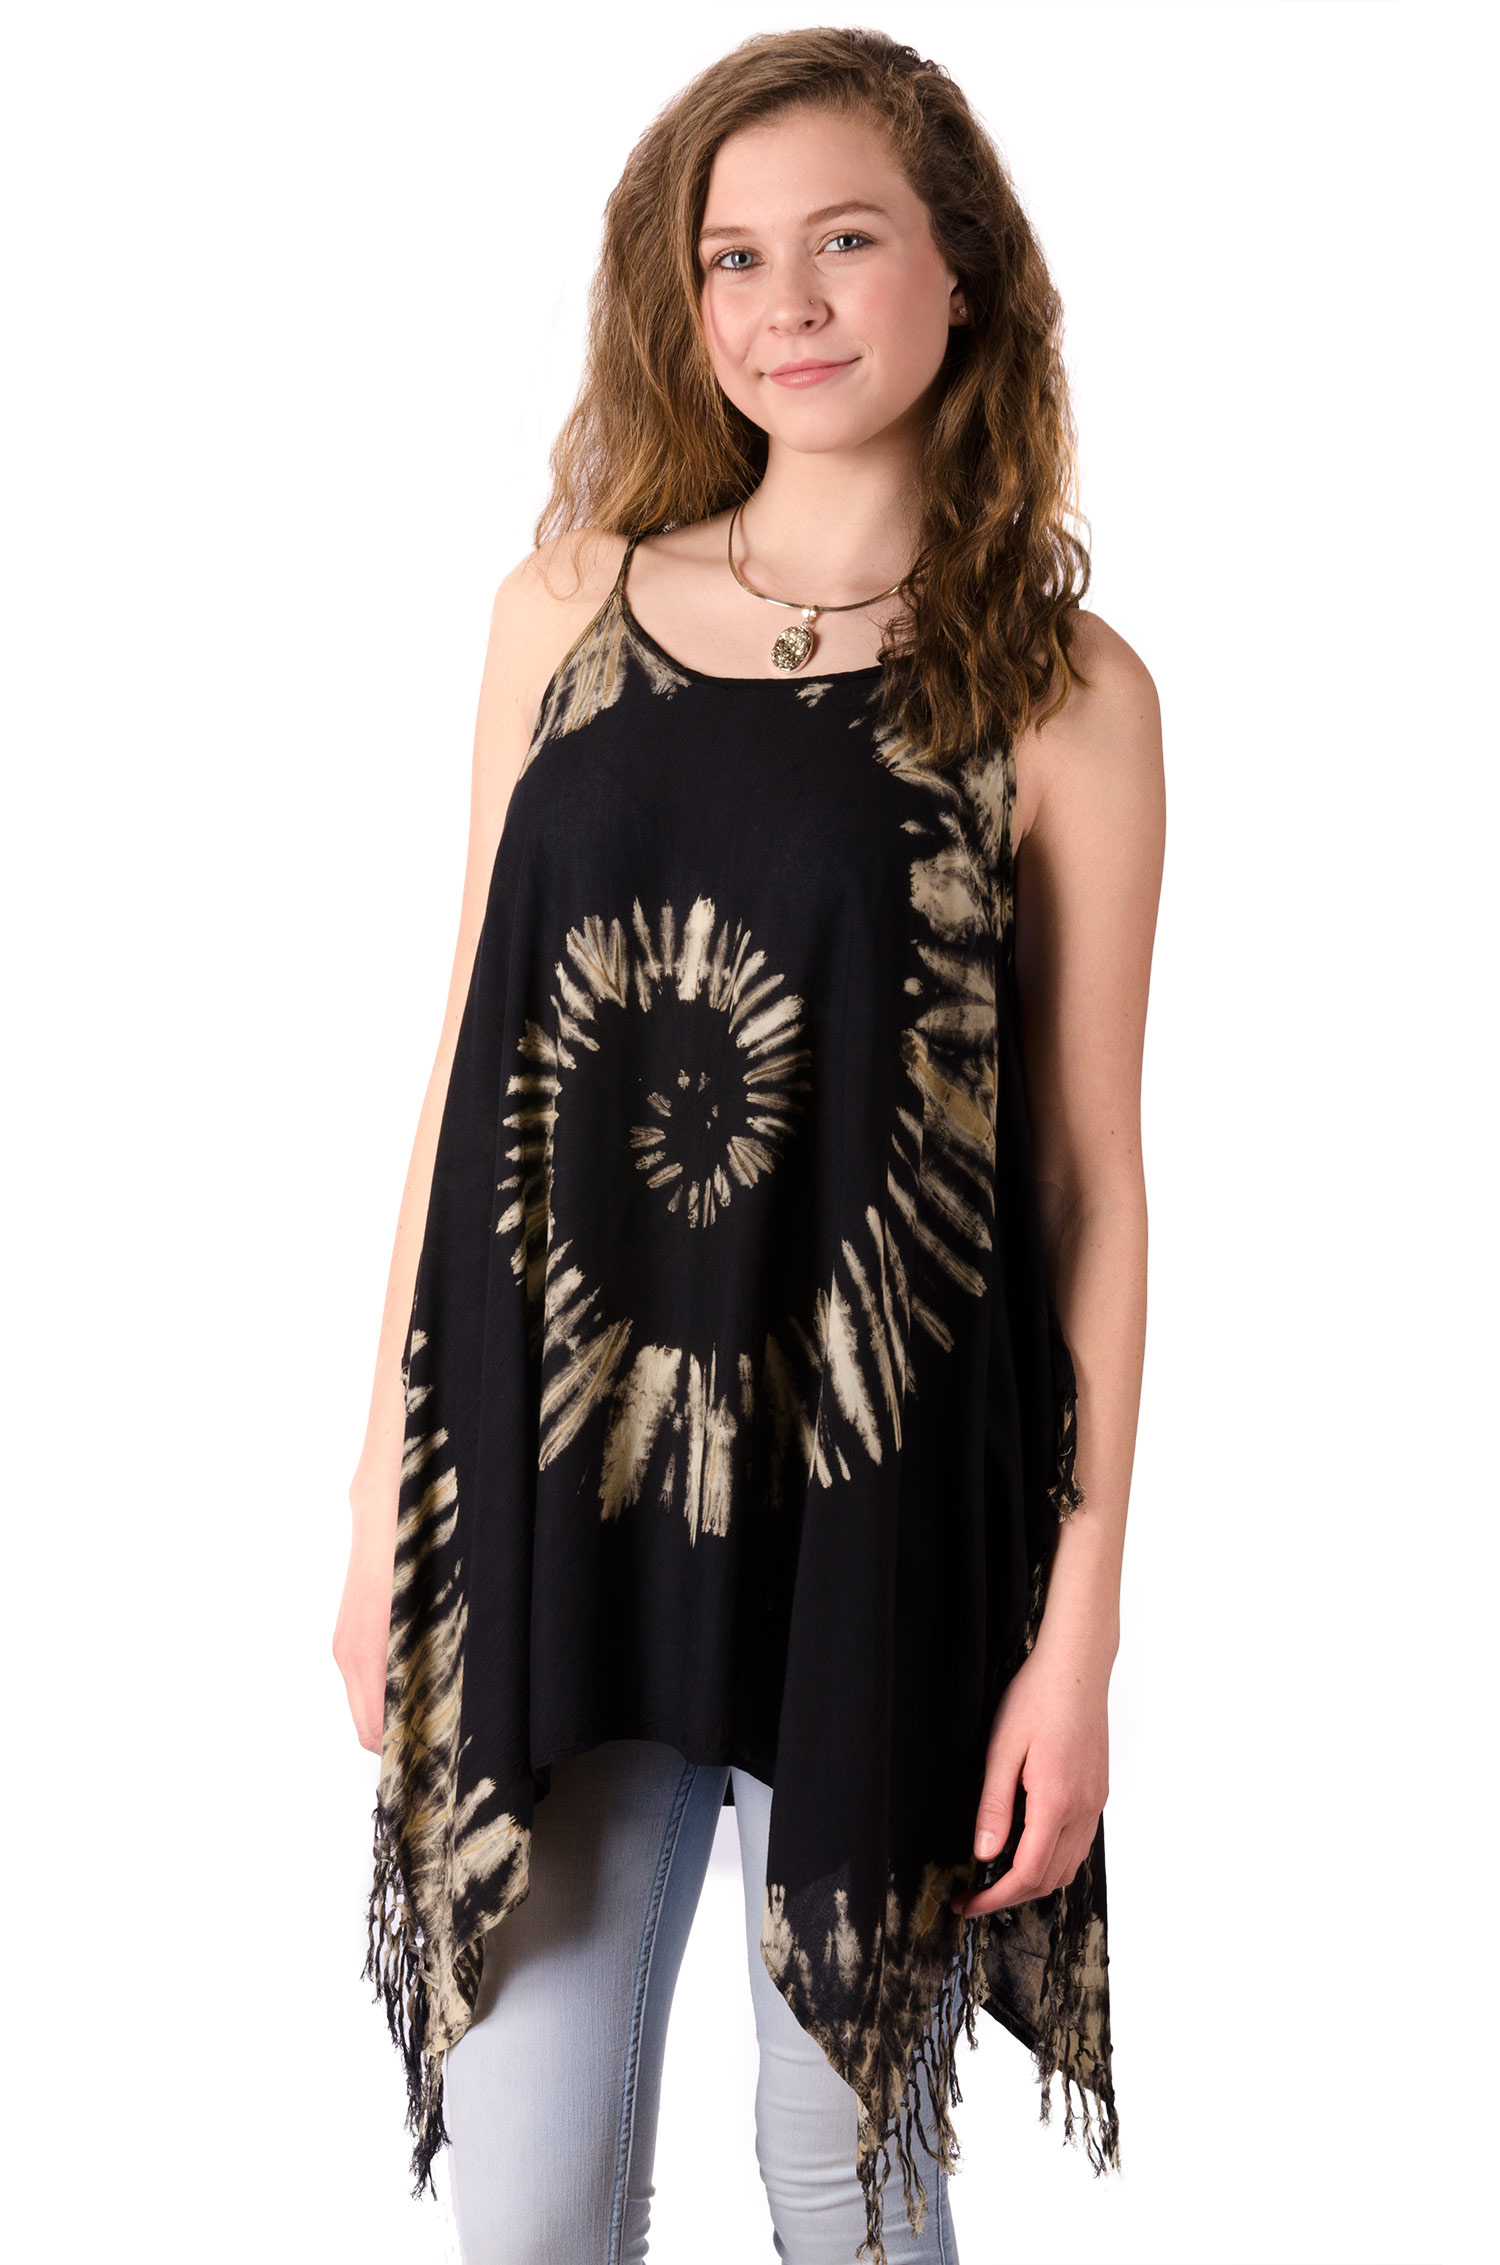 Fairy-Cut Fringed Top Hand Painted Tie Dye, Black Taupe